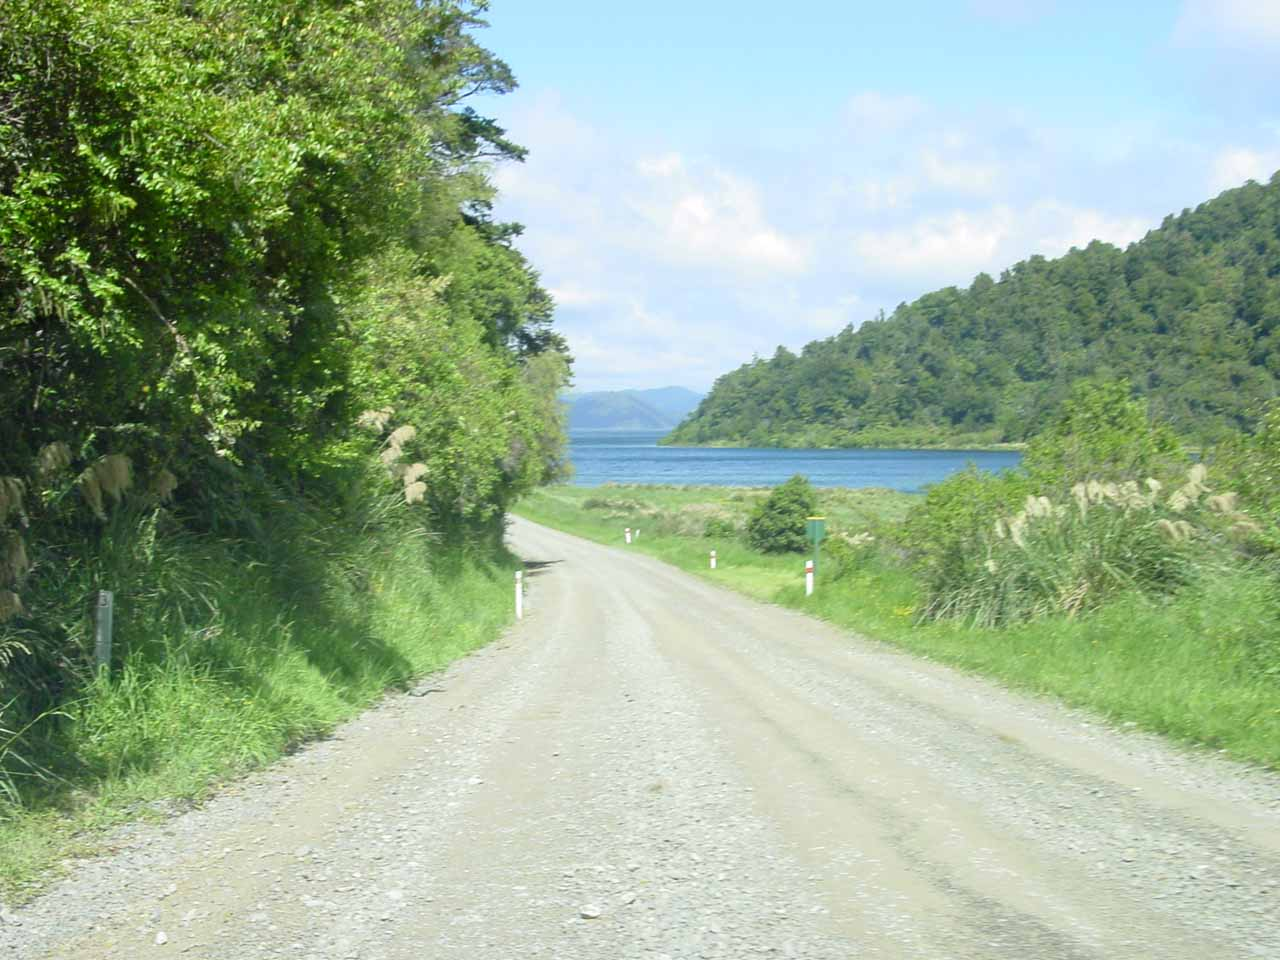 Continuing on the unsealed road through Te Urewera National Park and along the eastern shore of Lake Waikaremoana as we slowly made our way towards Wairoa